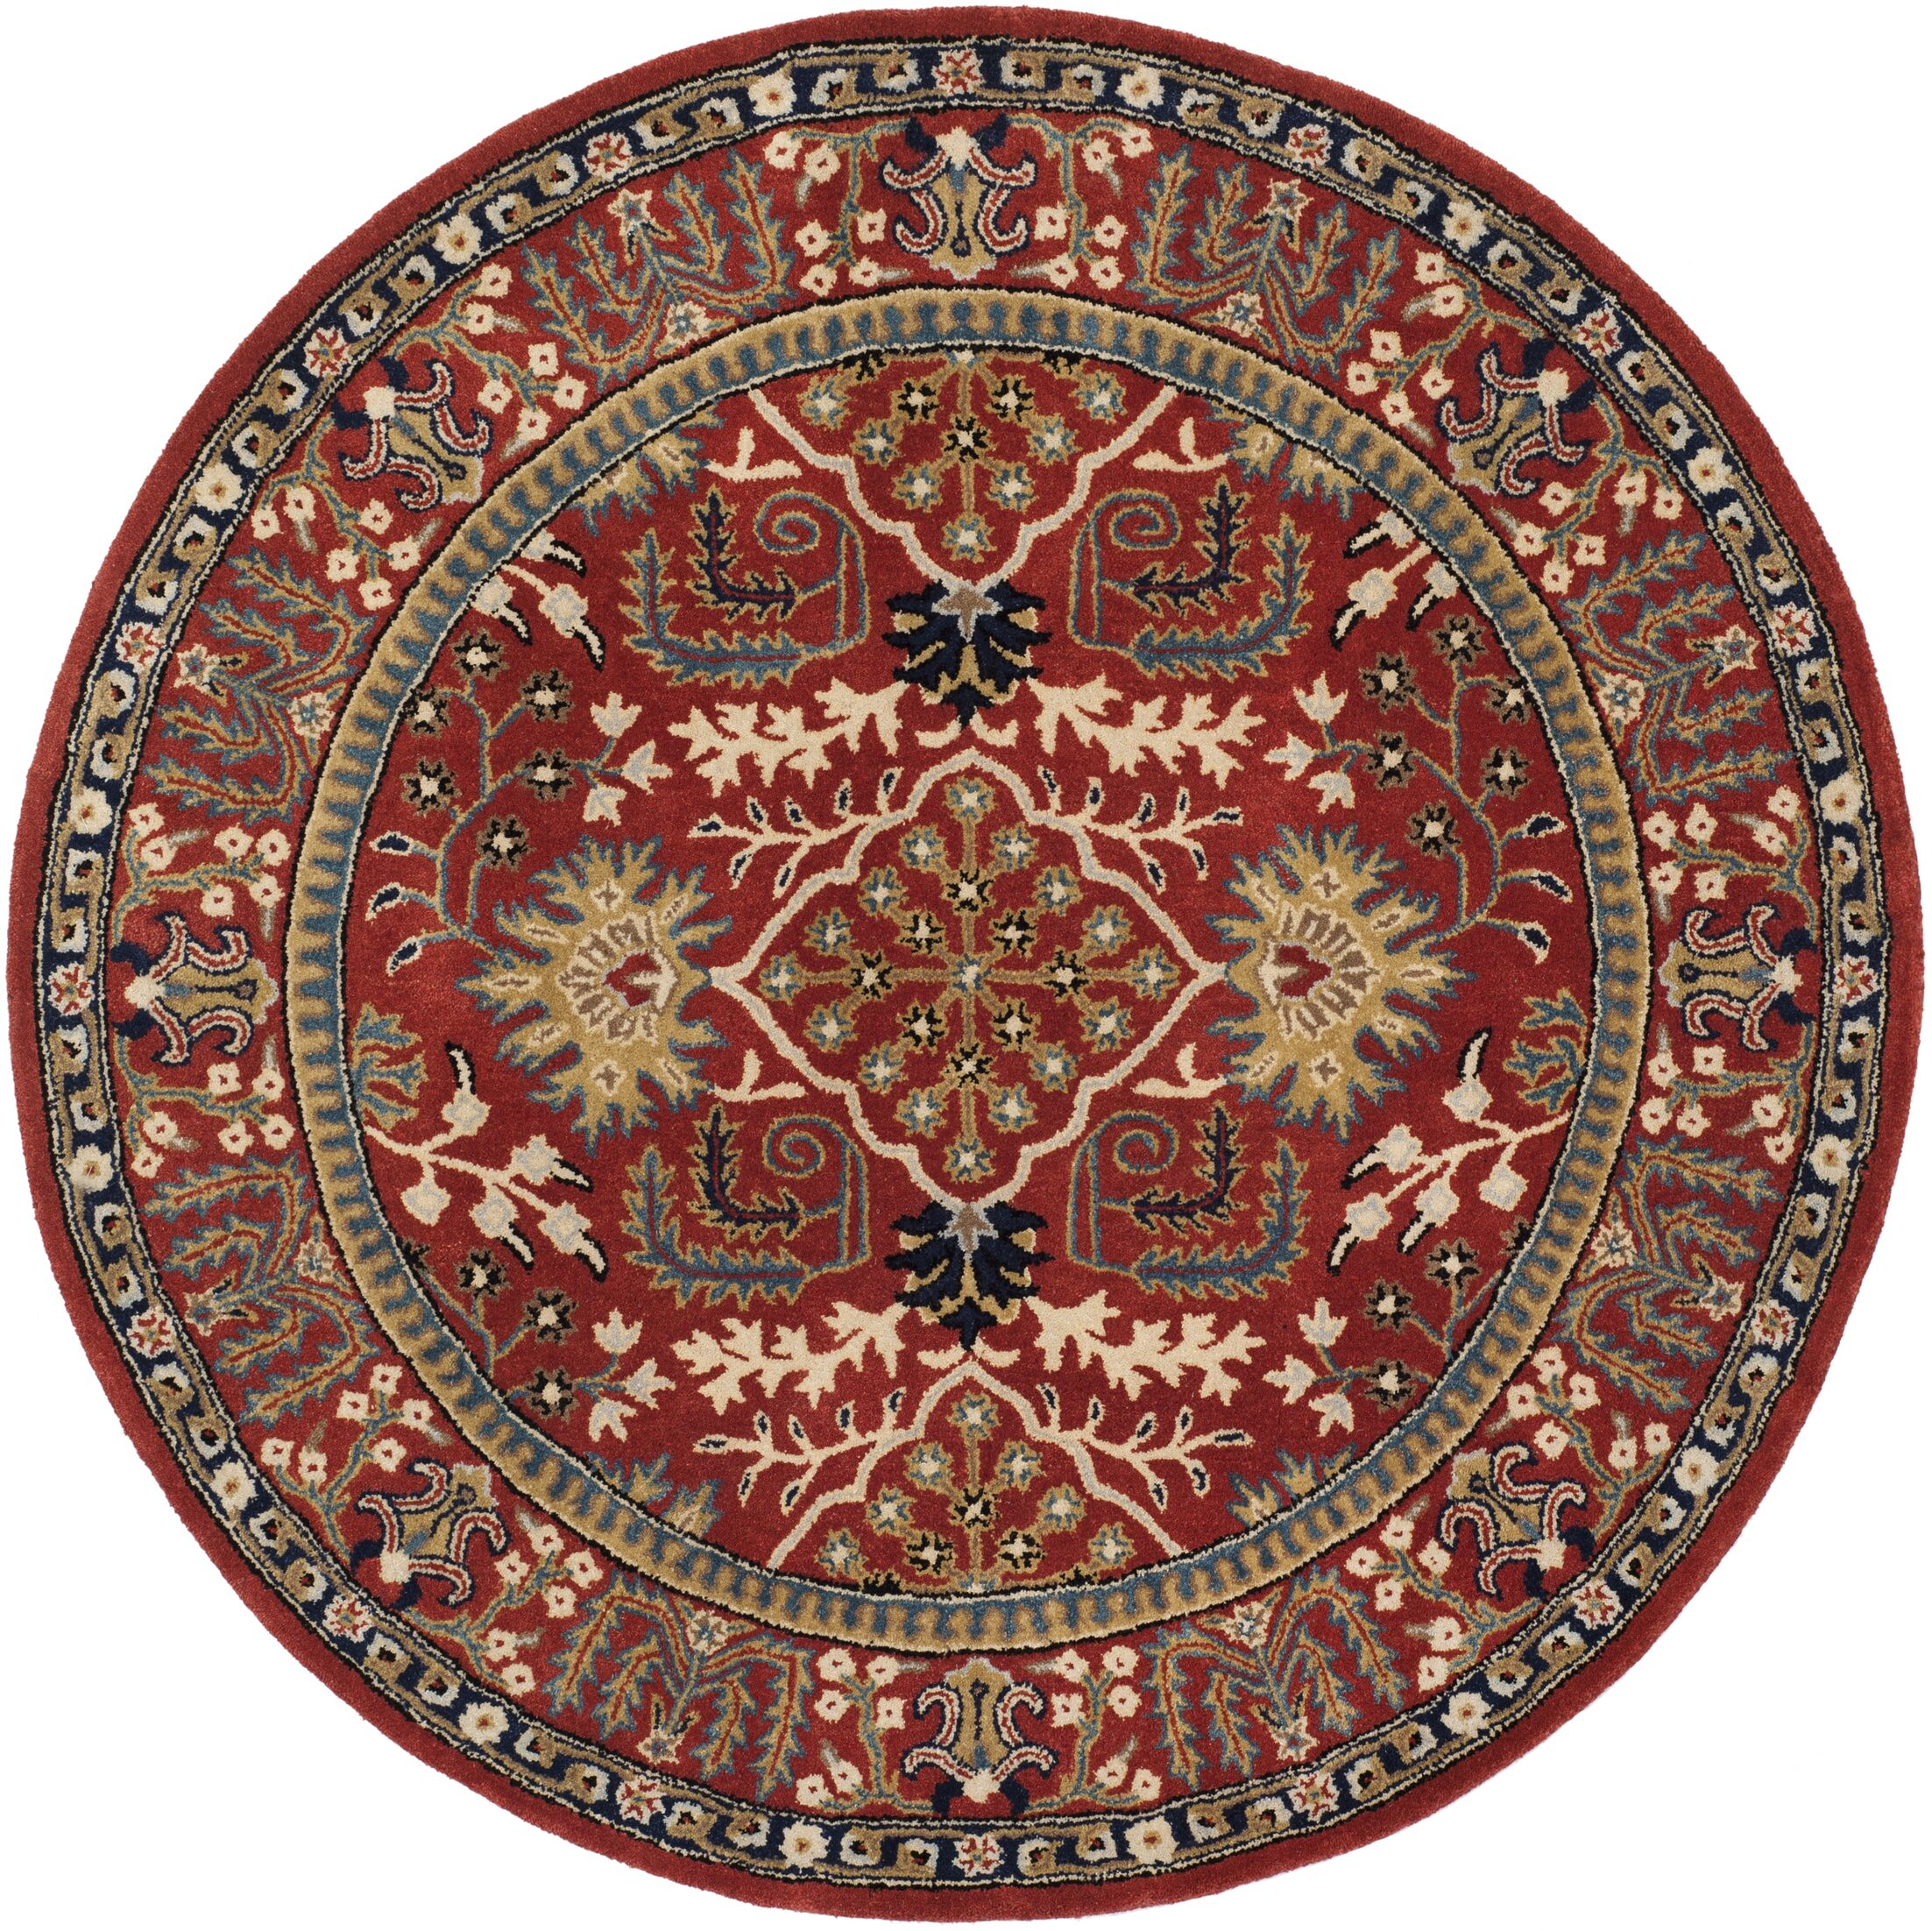 Genemuiden Hand-Tufted Red Area Rug Rug Size: Round 6'